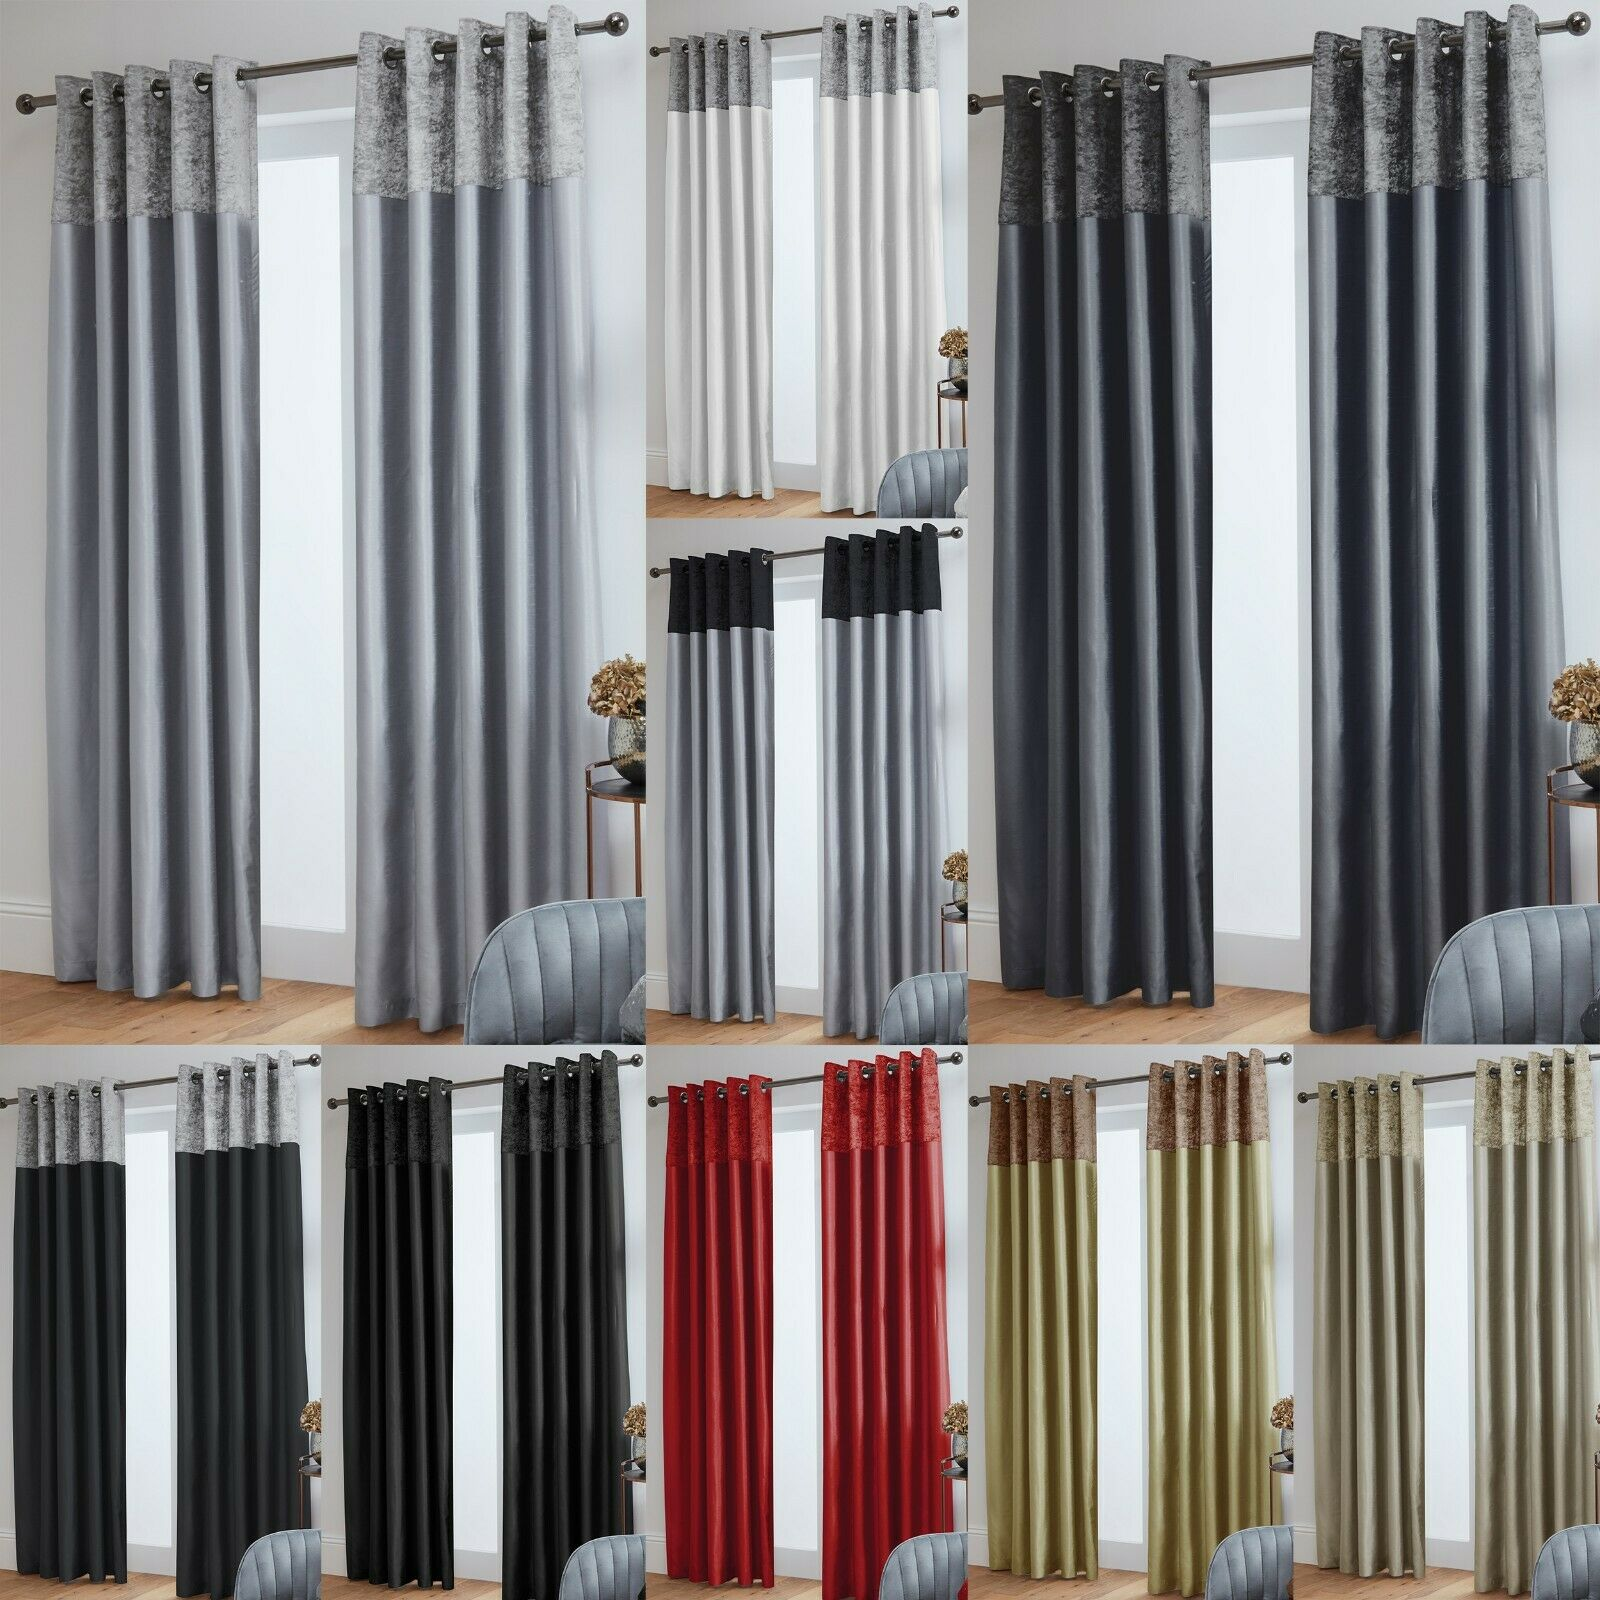 Crushed Velvet Band Faux Silk Eyelet Curtains Fully Lined Picclick Uk